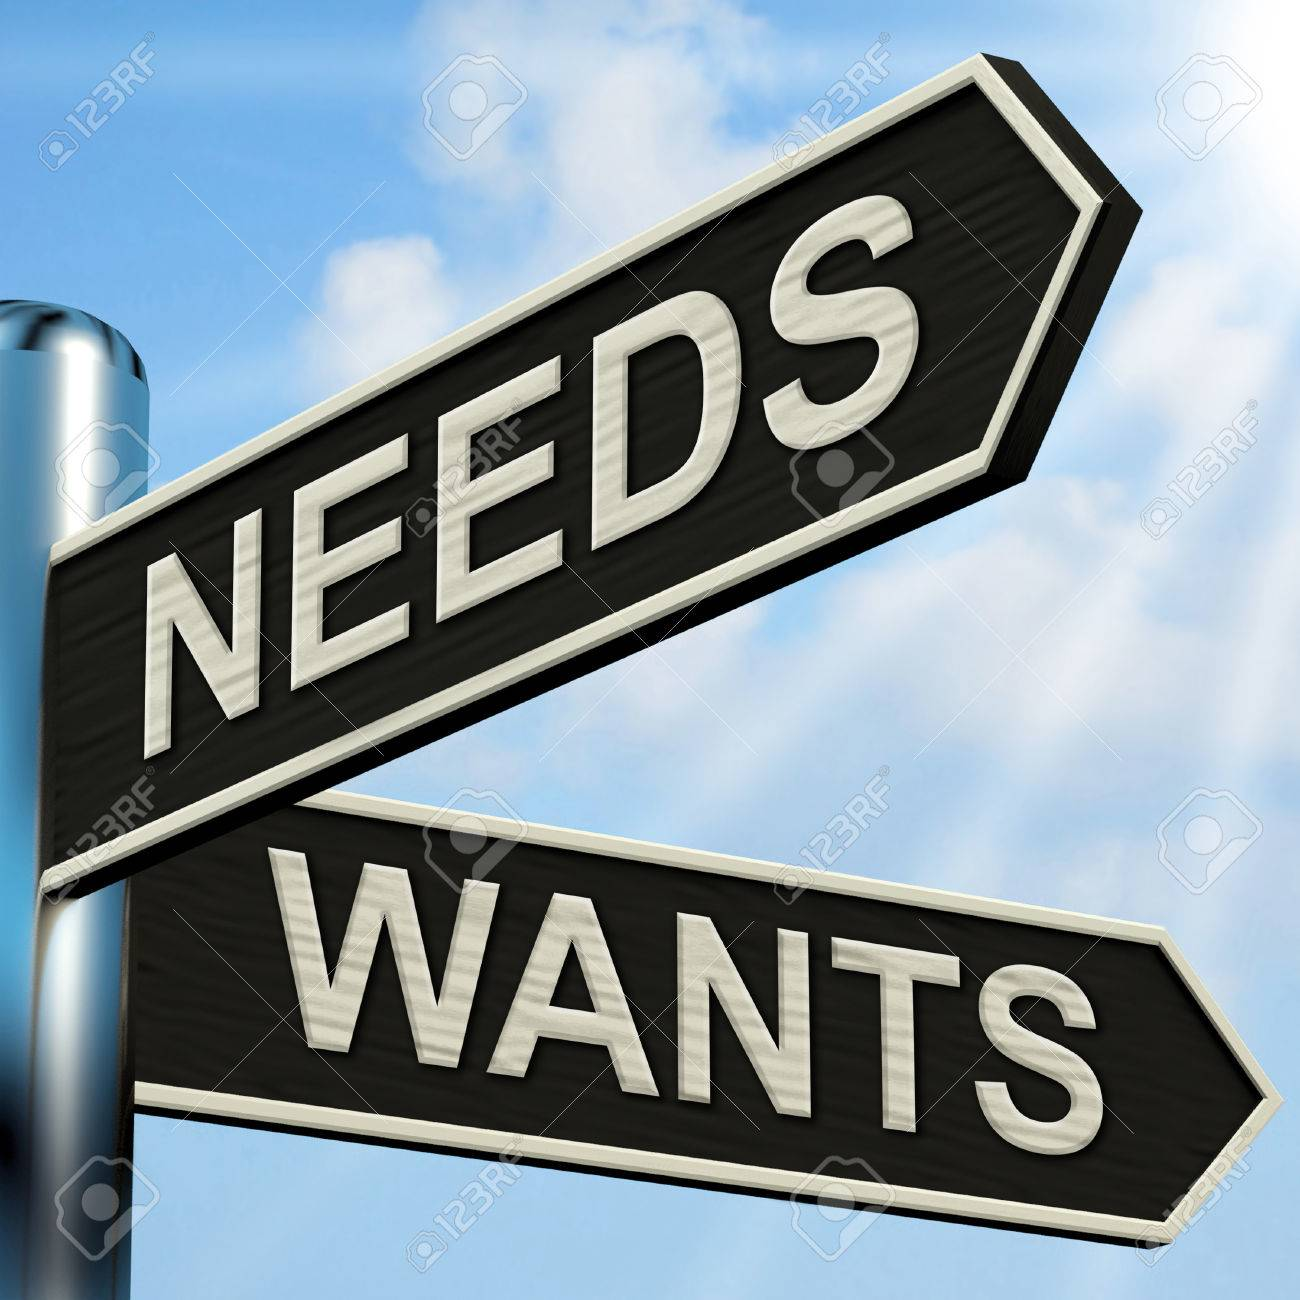 Needs Wants Signpost Meaning Necessity And Desire Stock Photo ...